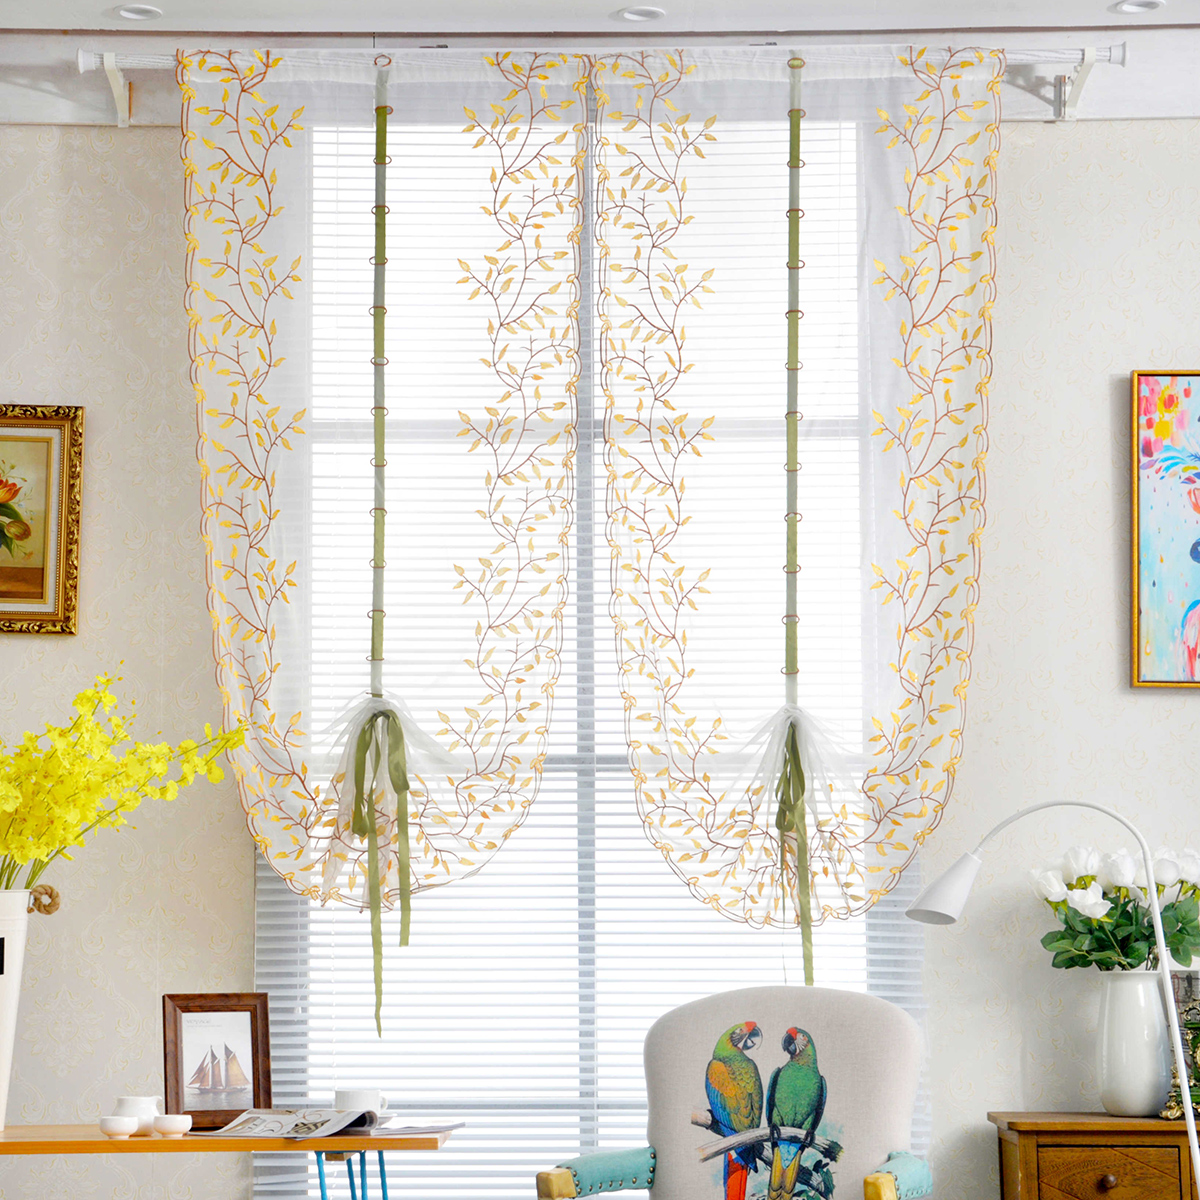 Details about Voile Tab Top Sheer Kitchen Balcony Window Curtain Liftable  Roman Curtains Gift